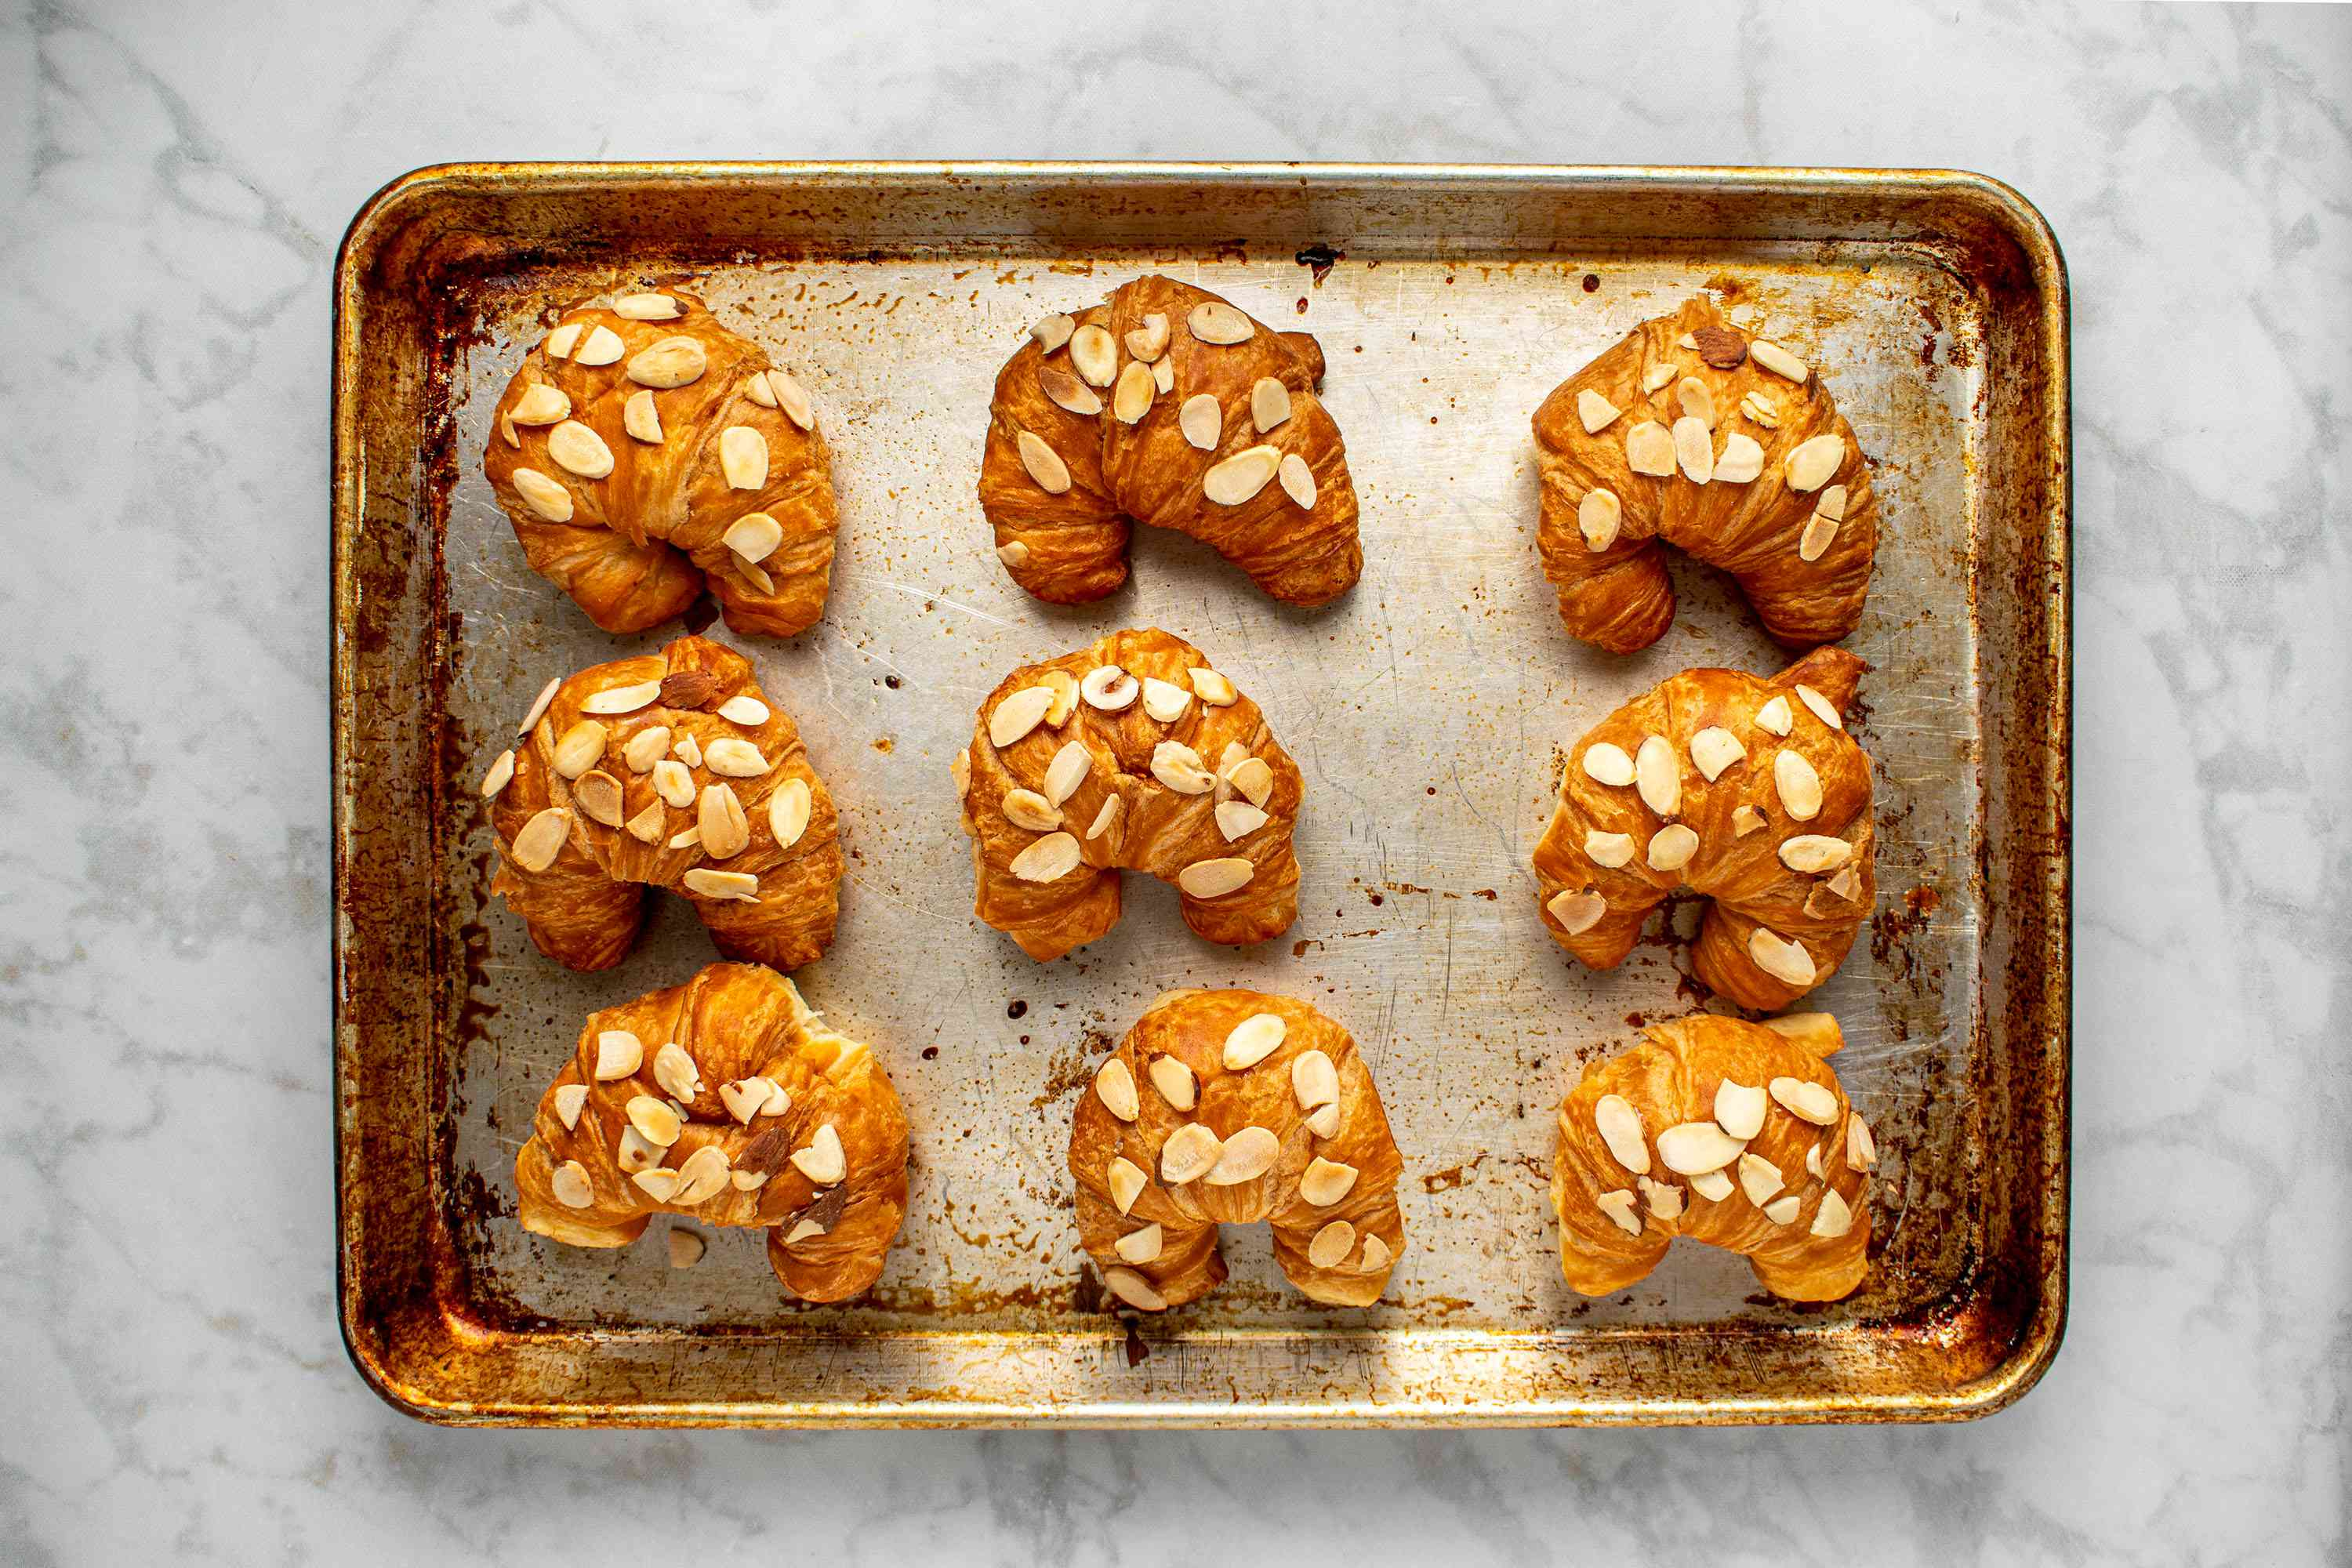 baked Classic French Almond Croissants on a baking sheet